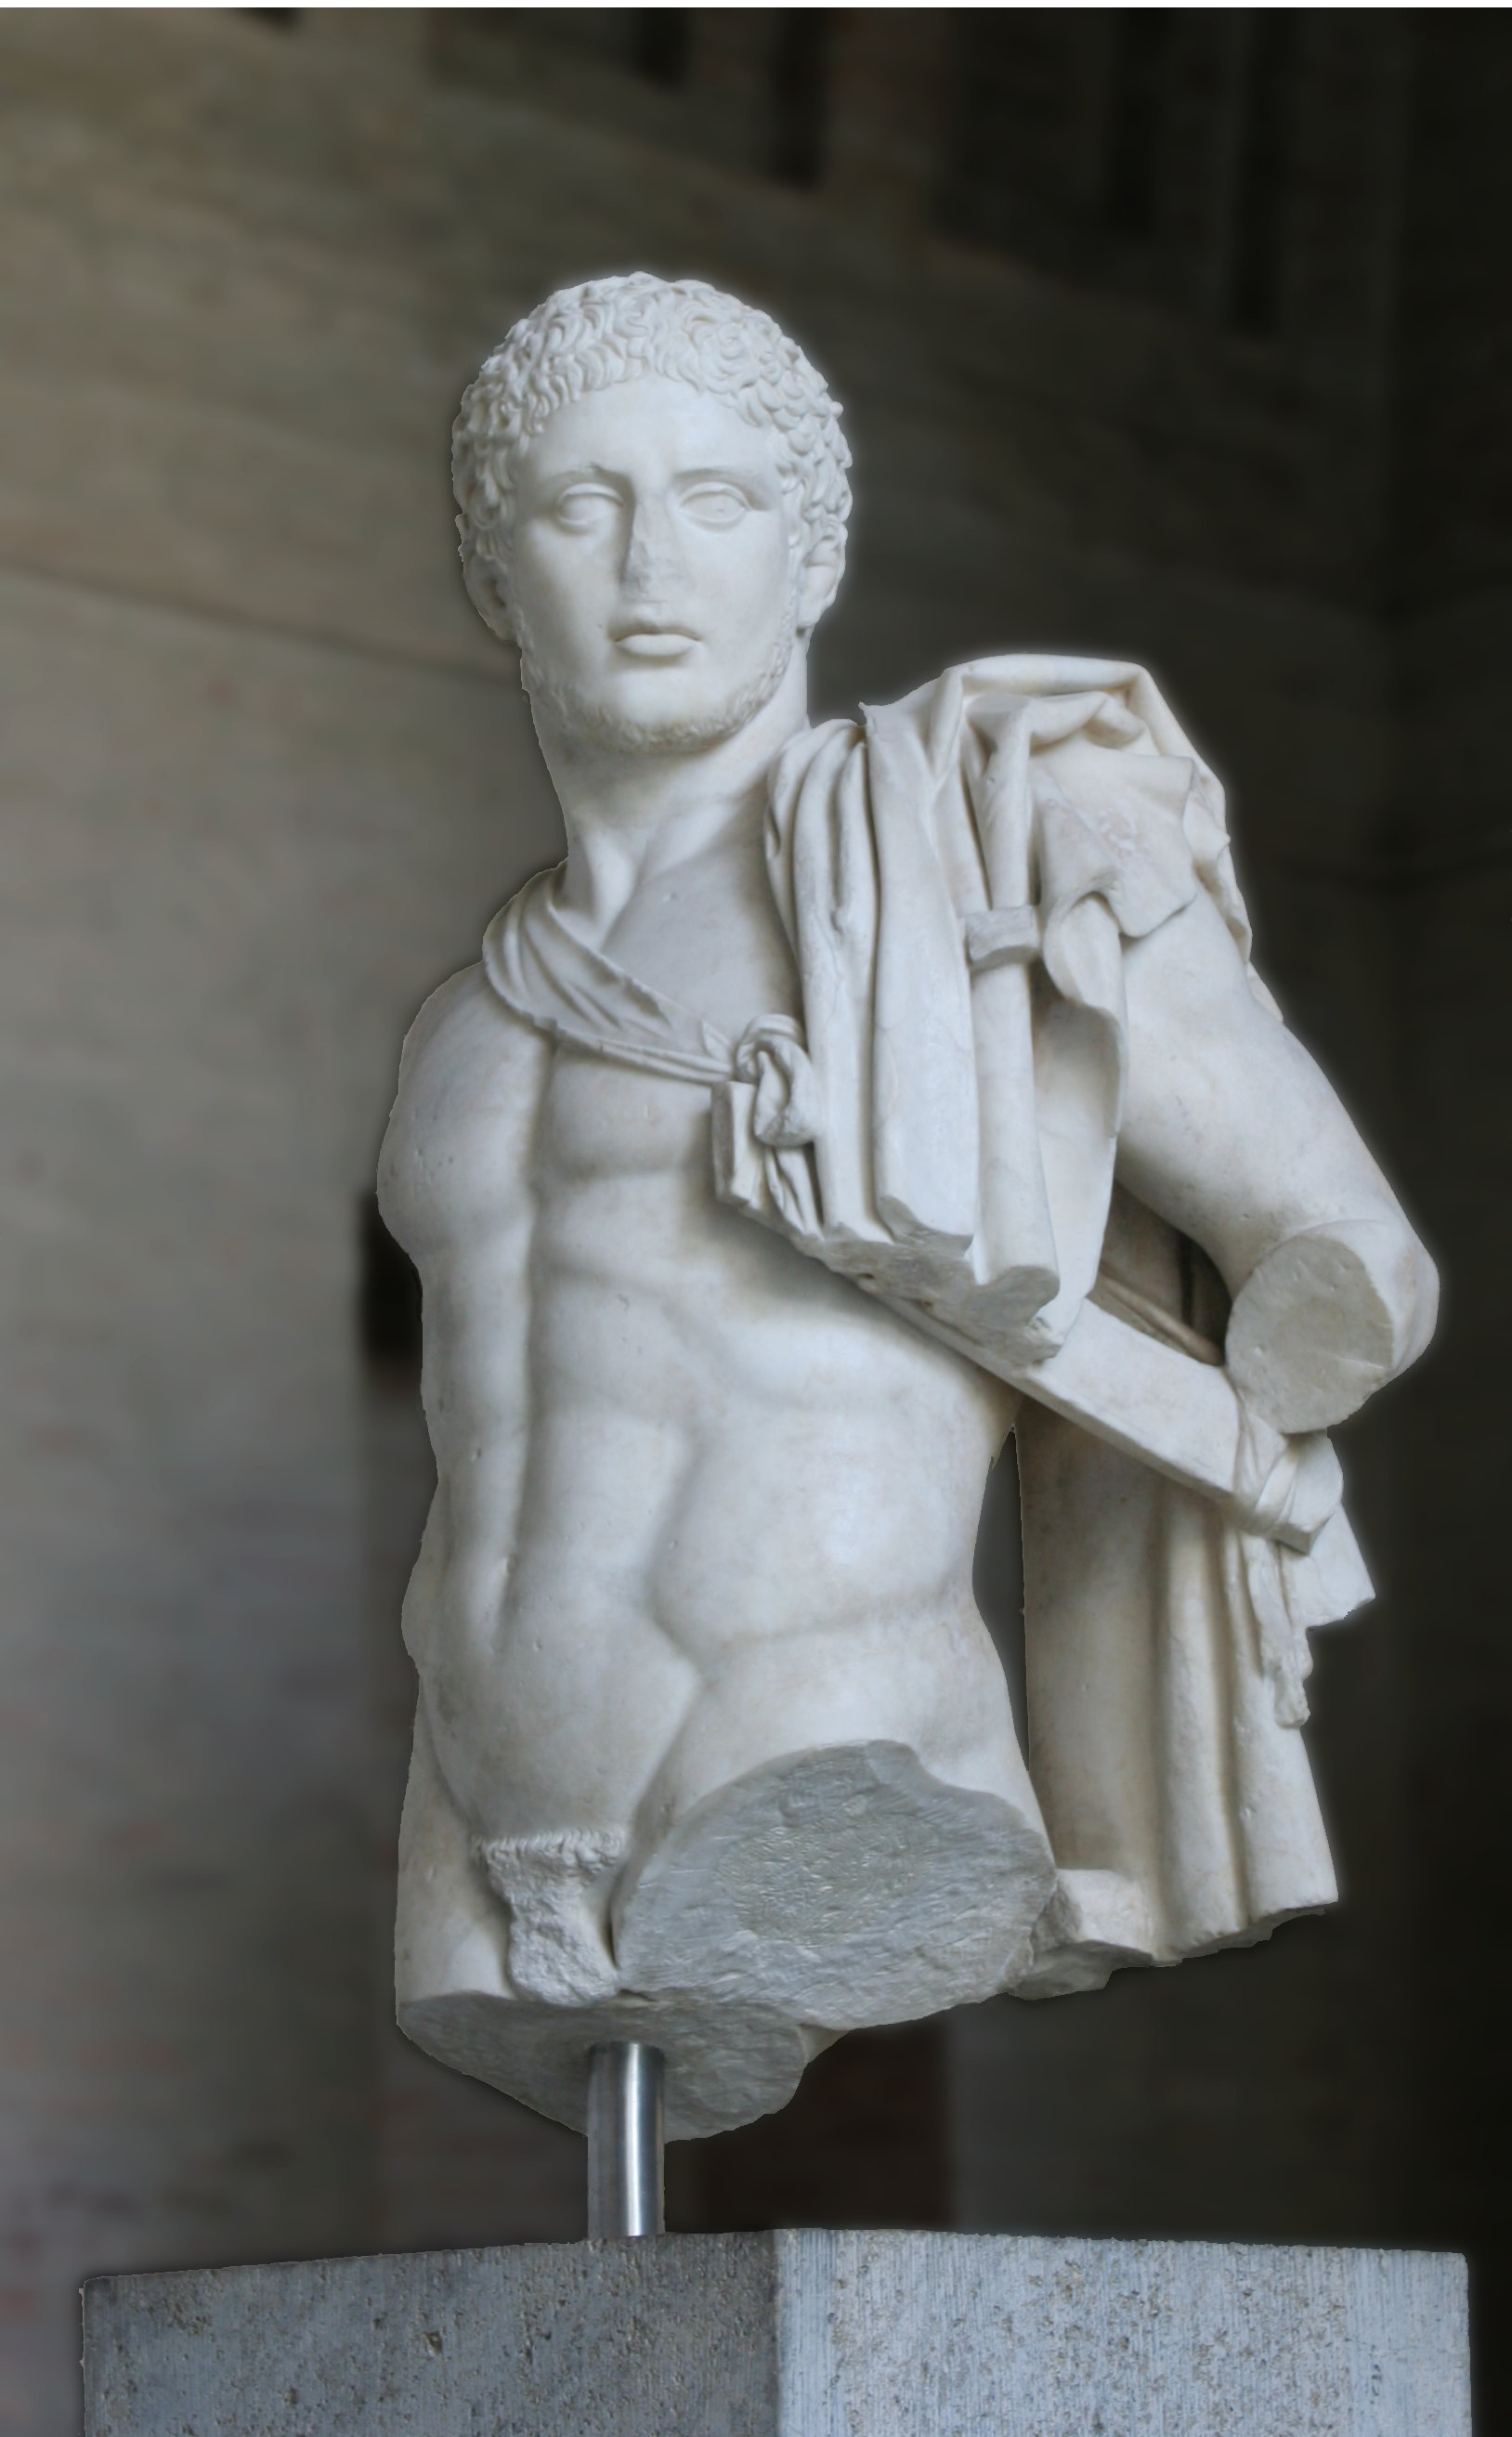 Diomedes, King of Argos – Roman copy of a statue by Kresilas from c. 430 BC. Glyptothek, Munich.